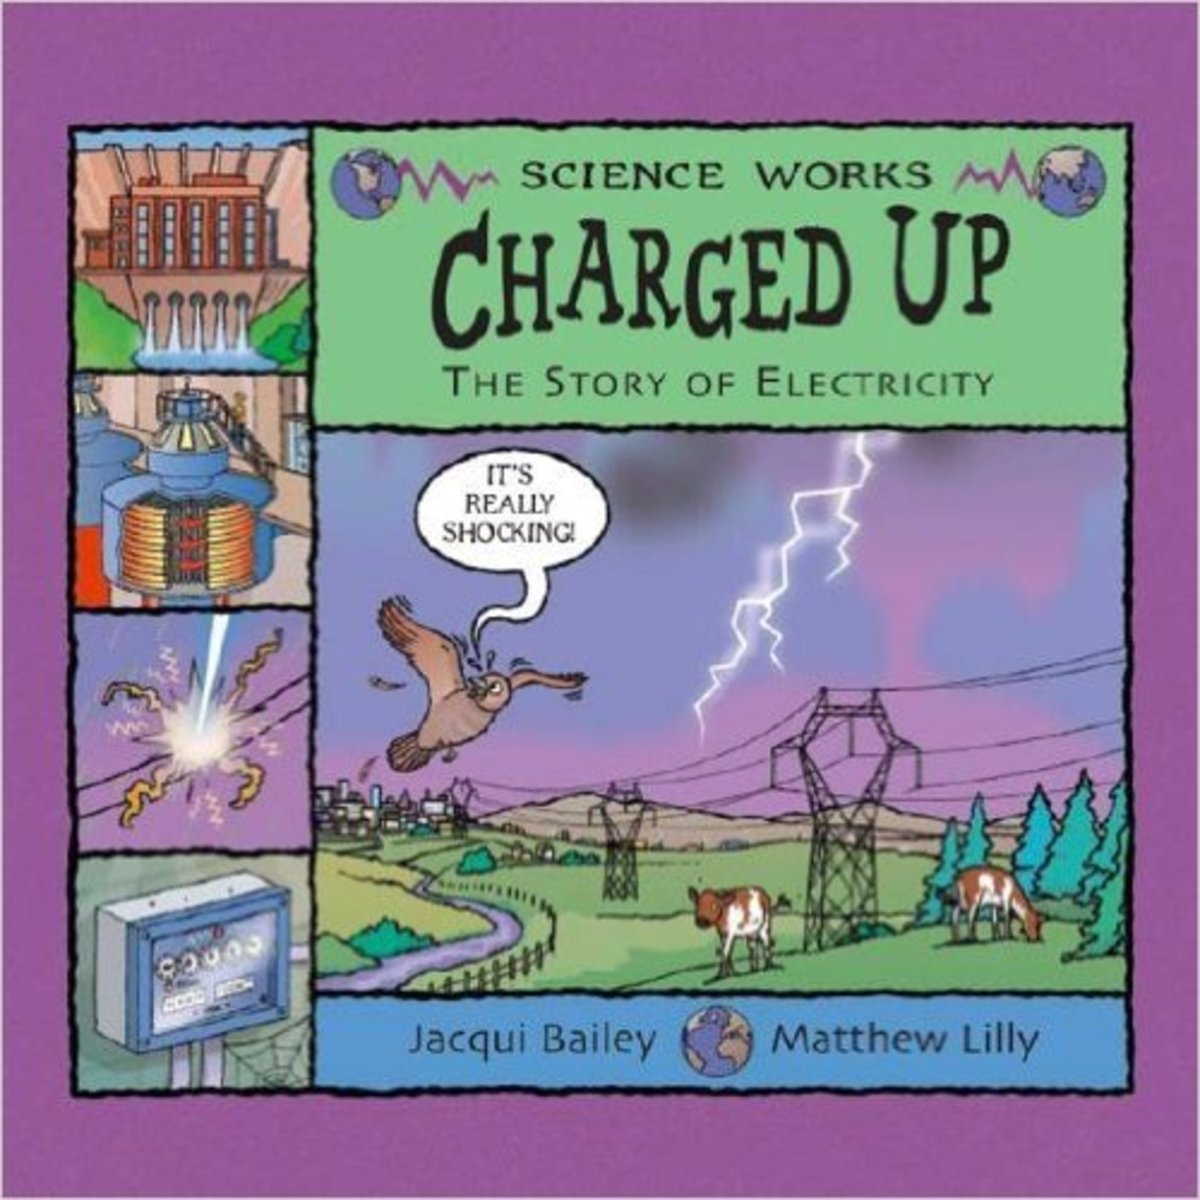 Charged Up: The Story of Electricity (Science Works) by Jacqui Bailey